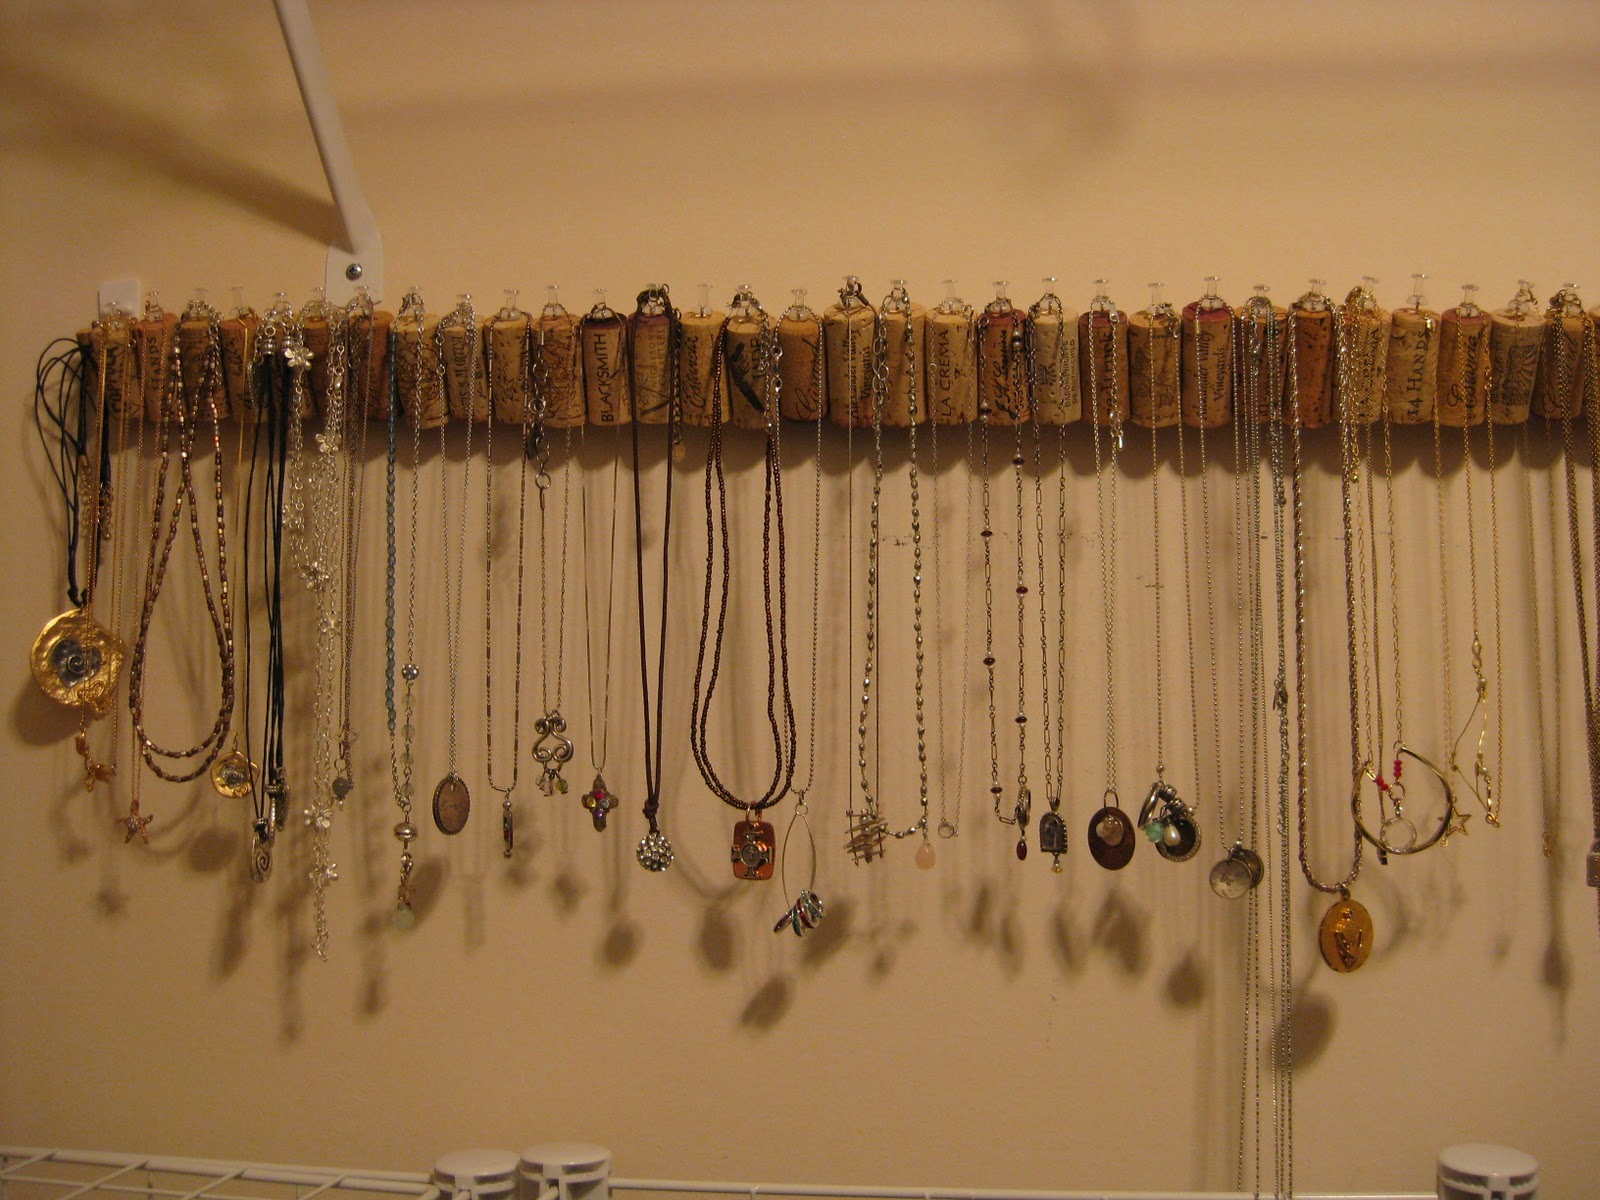 Using bottle corks with hooks in them is a new fun way to display your jewelry.